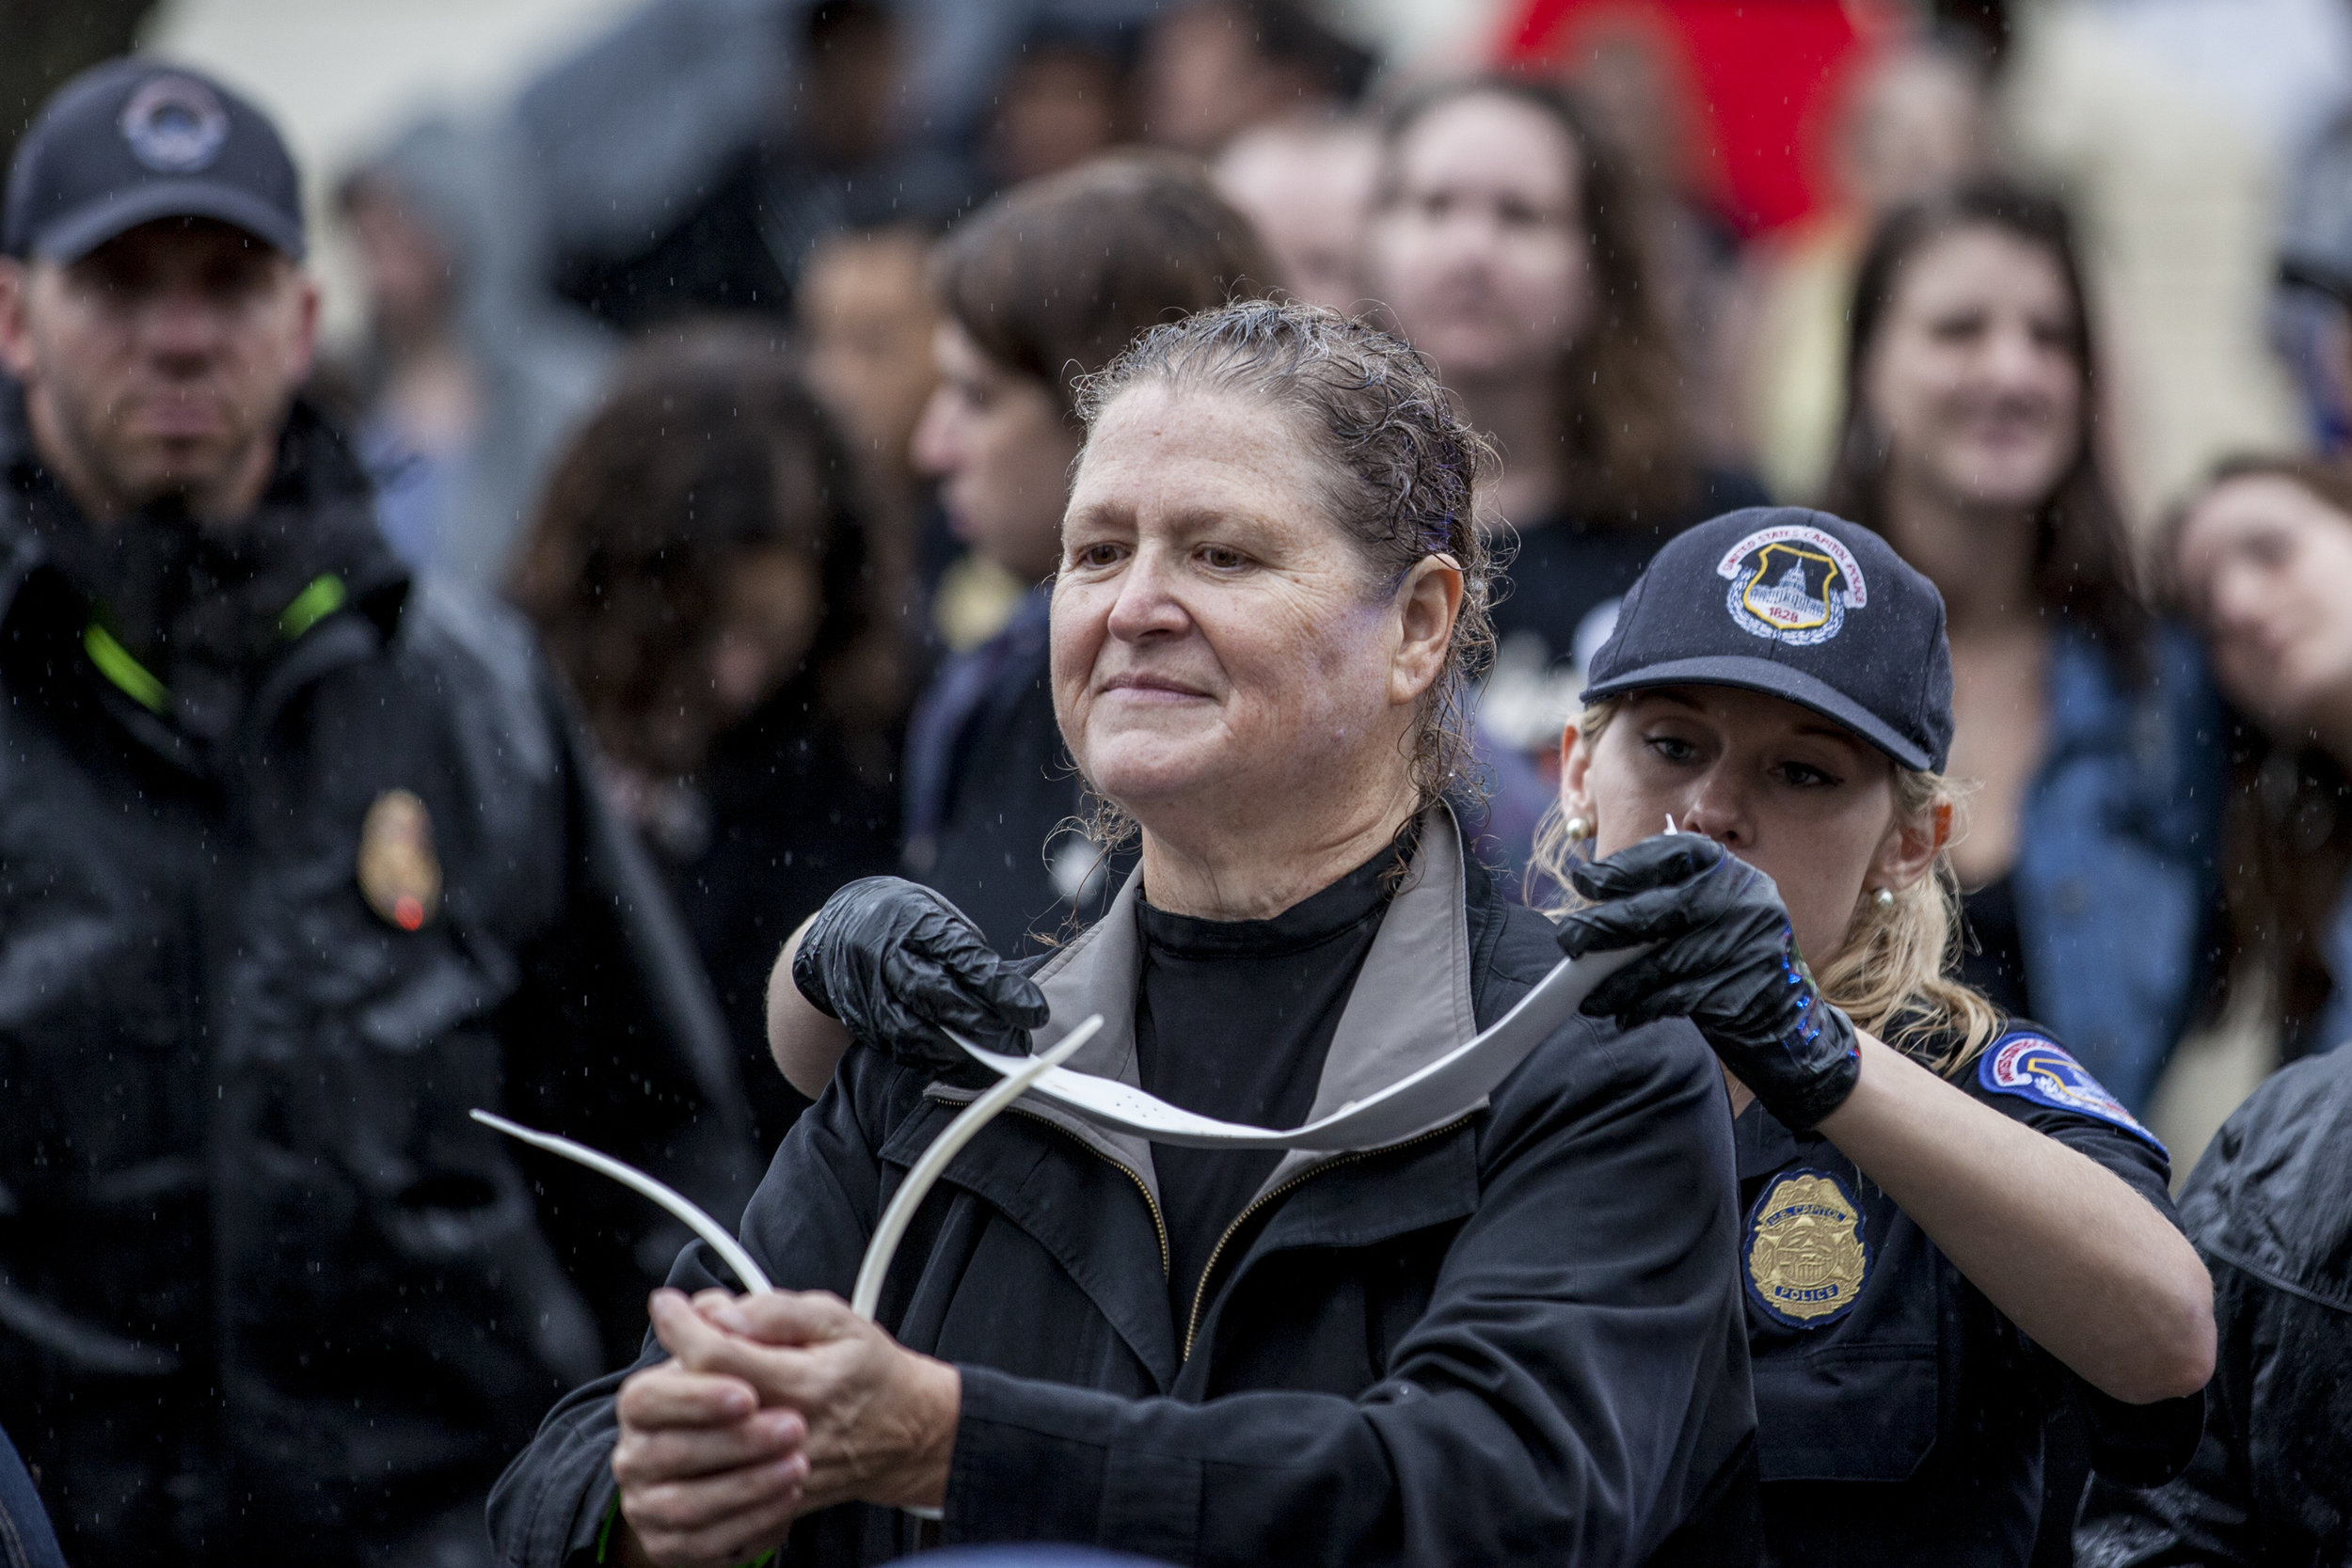 A Unitarian Church pastor's collar is removed by the police as she gets arrested outside the Supreme Court on September 27th, 2018